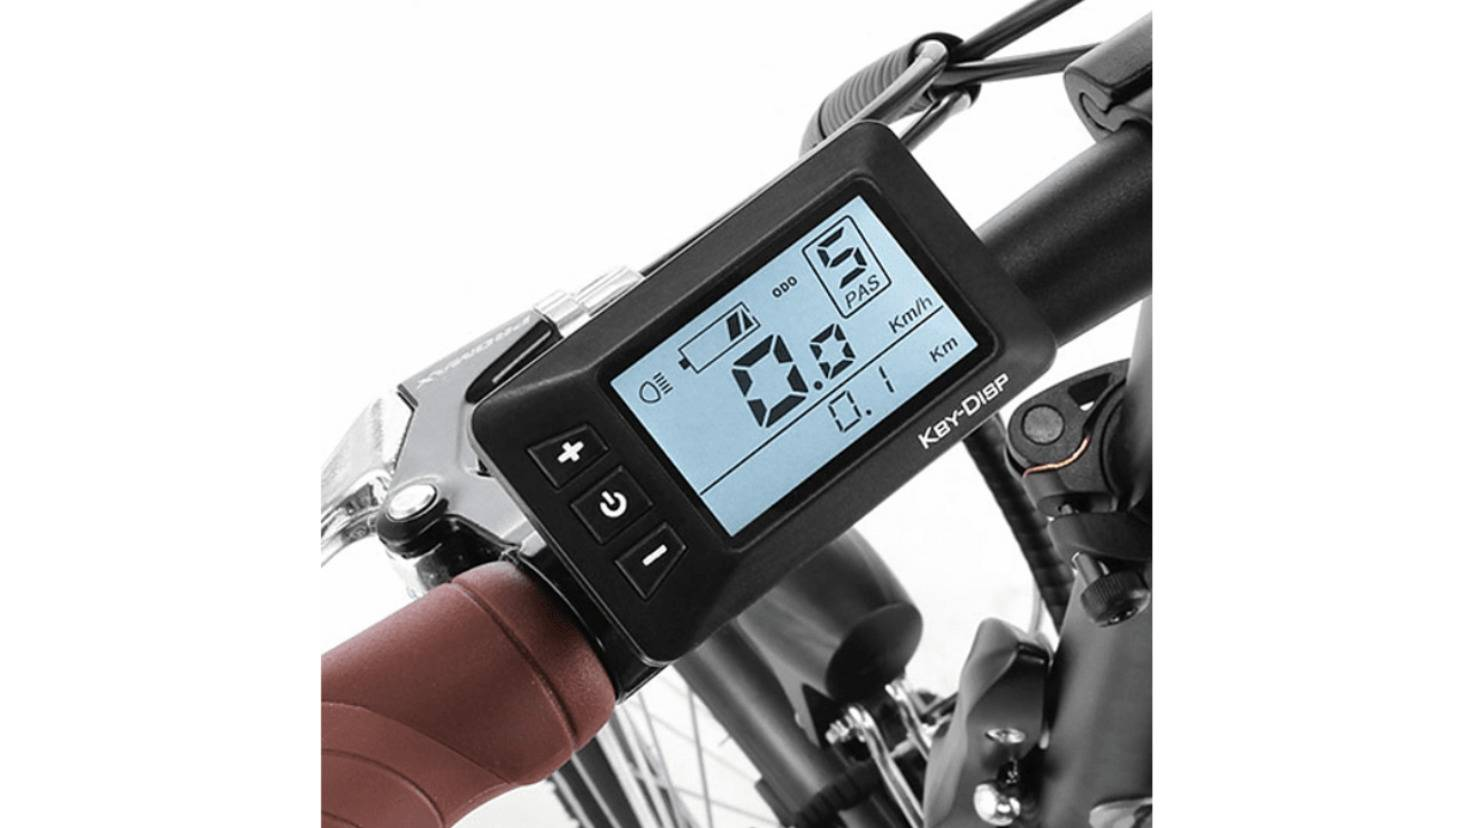 Fischer citybike LCD Display